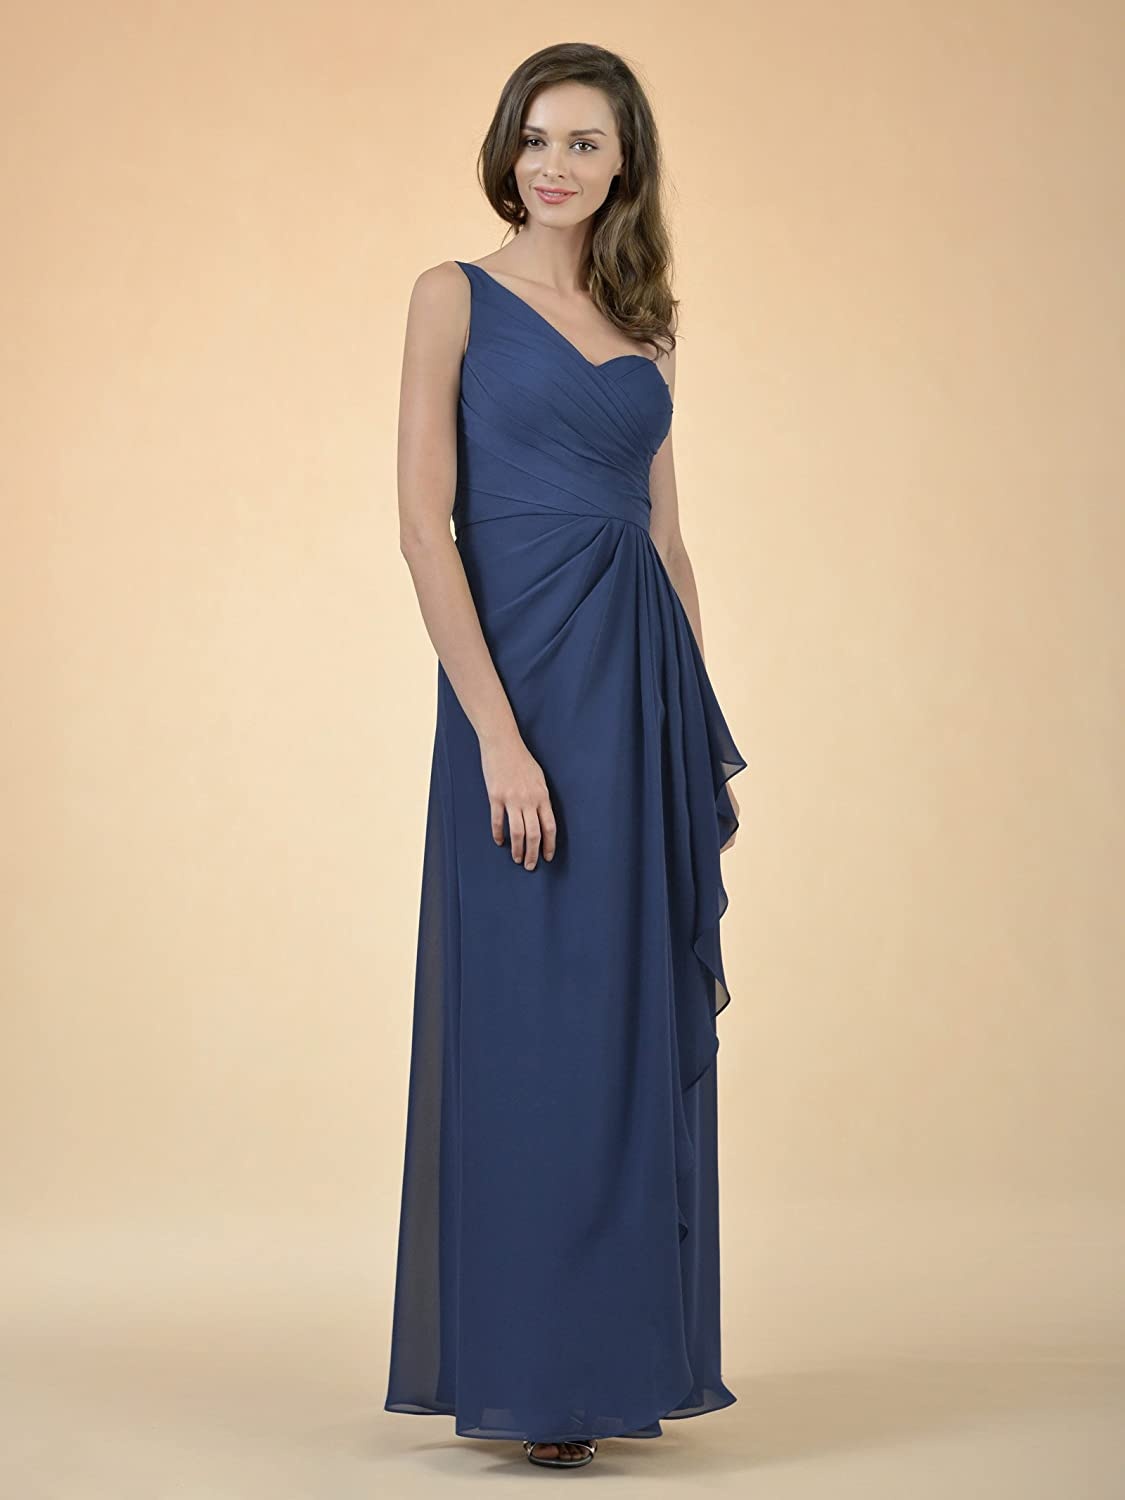 Alicepub One Shoulder Bridesmaid Dress Asymmetrical Evening Party Dress for Women